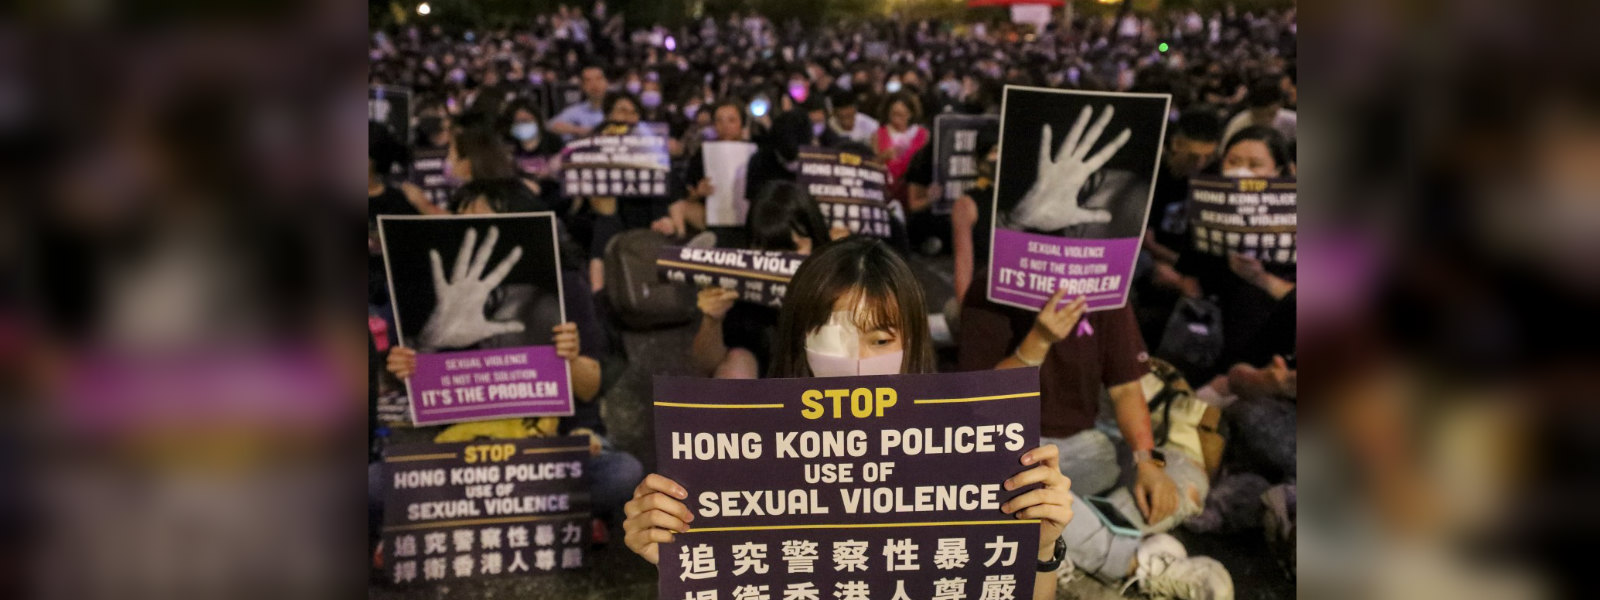 Hong Kong protesters hold '#MeToo' rally against alleged police sexual violence